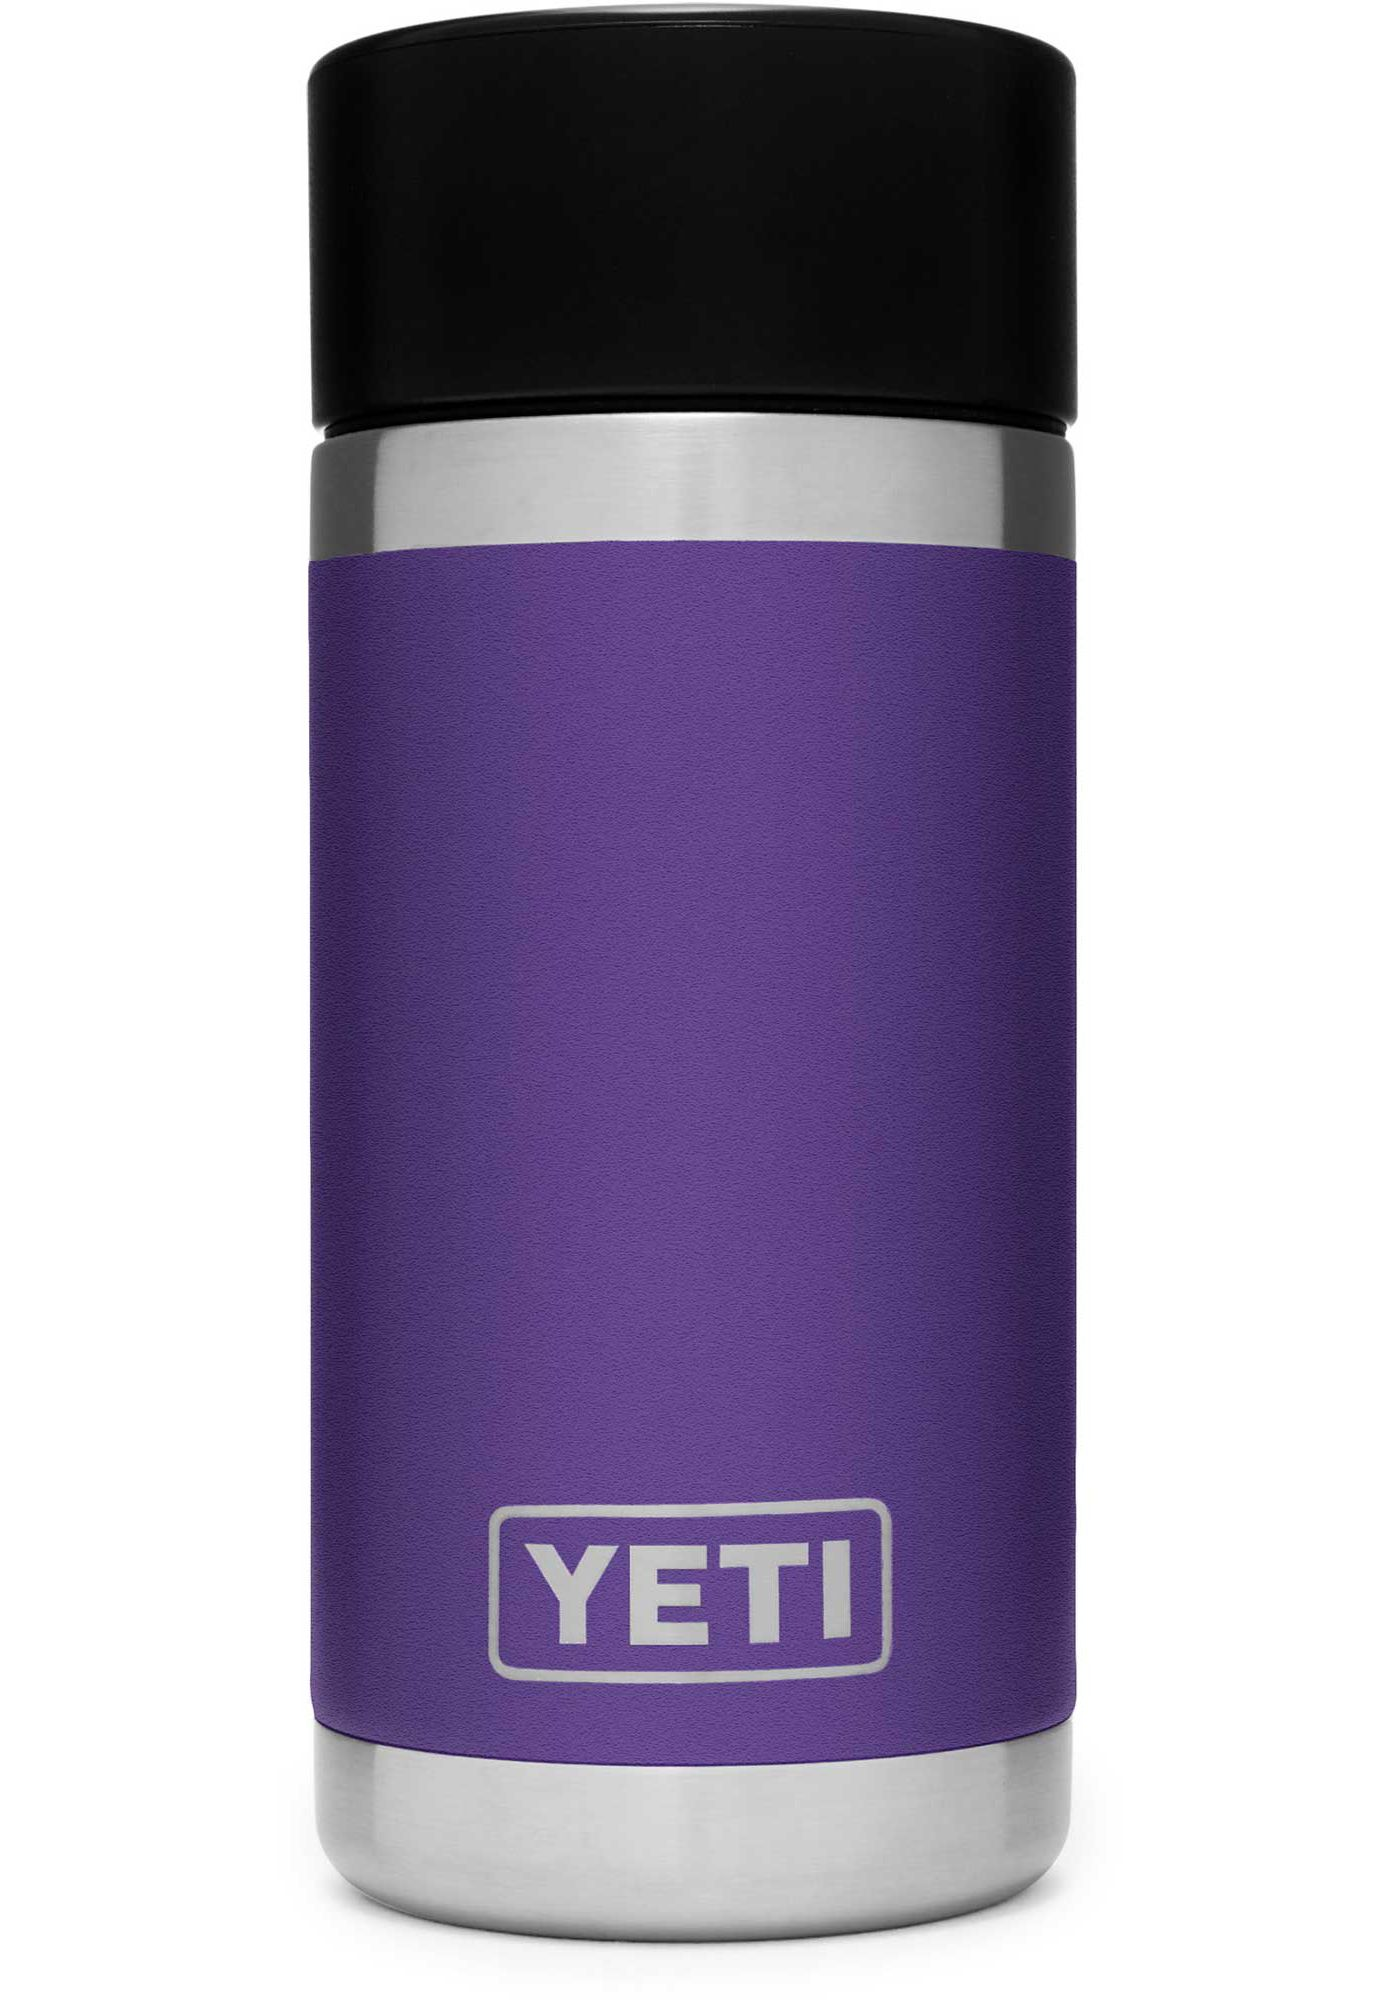 YETI Rambler 12 oz. Bottle with HotShot Cap